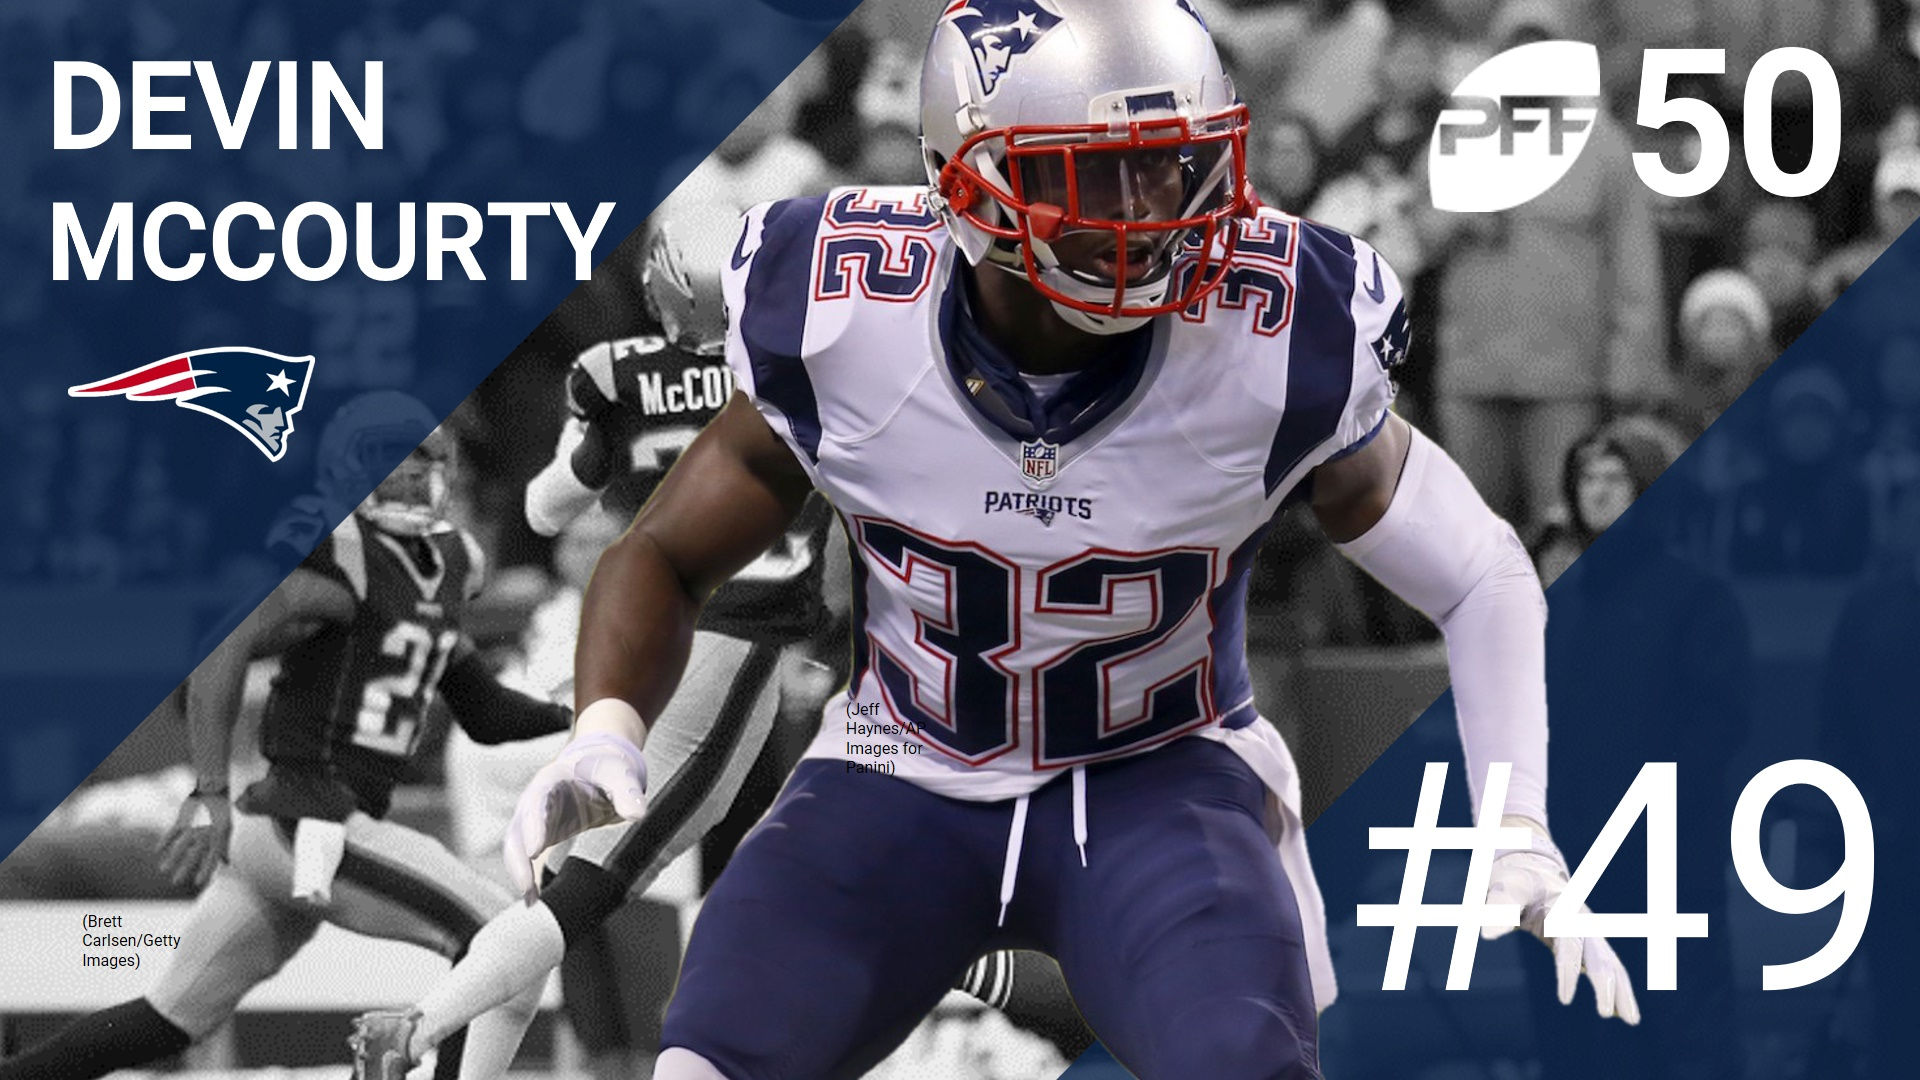 49 Devin McCourty